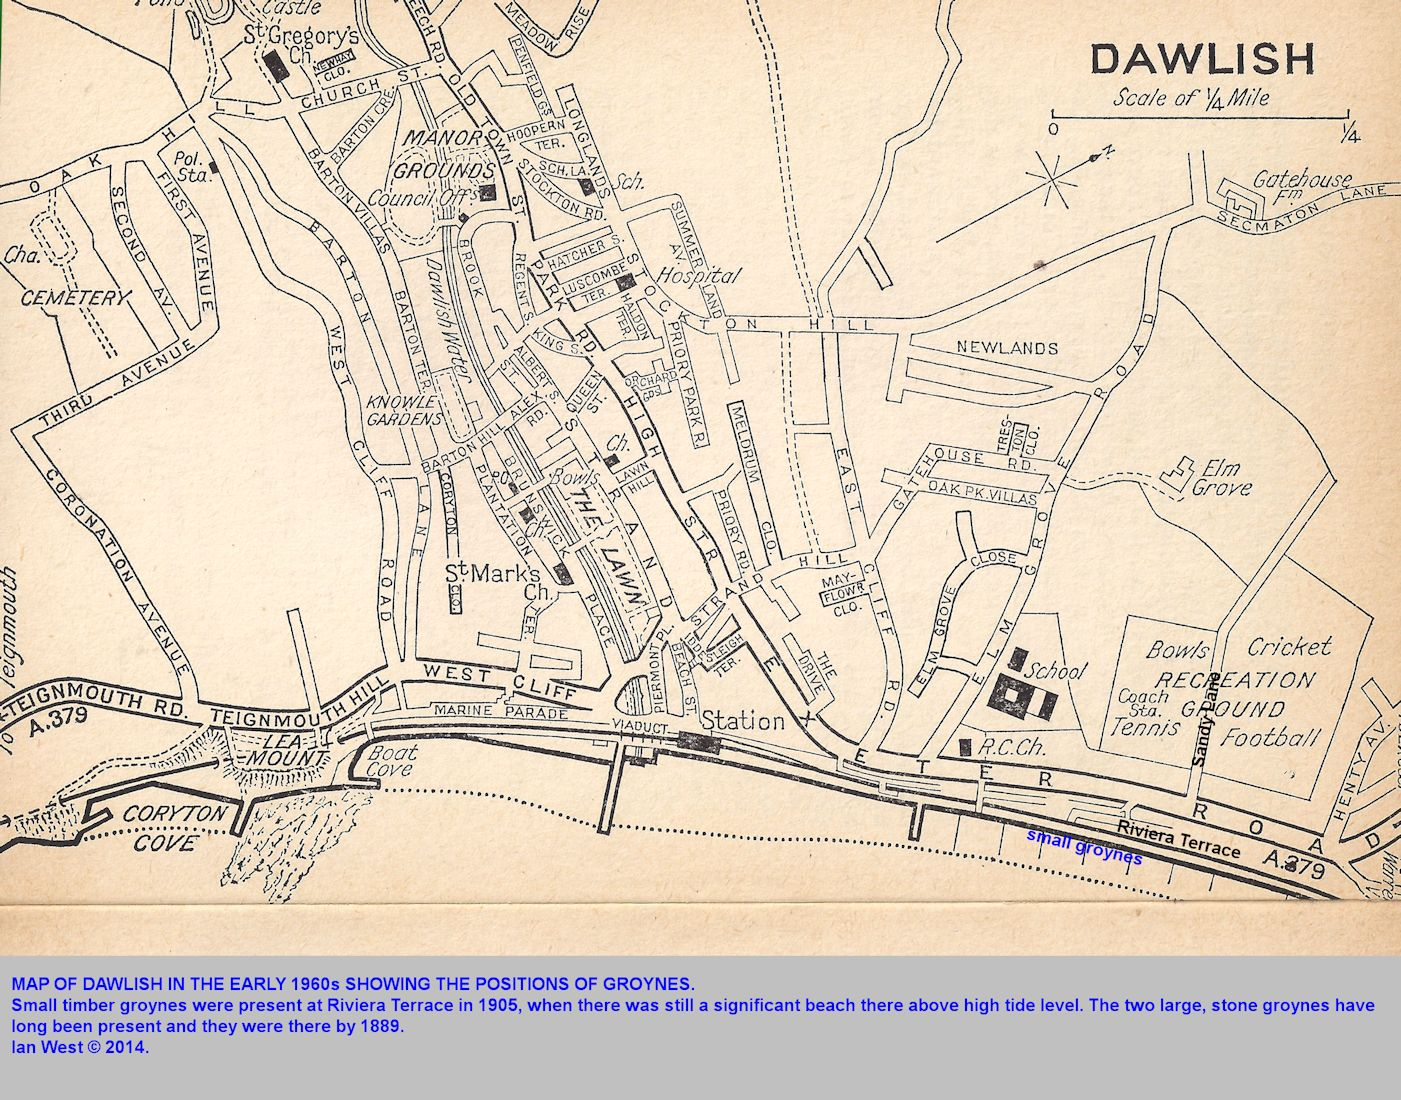 An early 1960s map of Dawlish, Devon, showing the coast with groynes